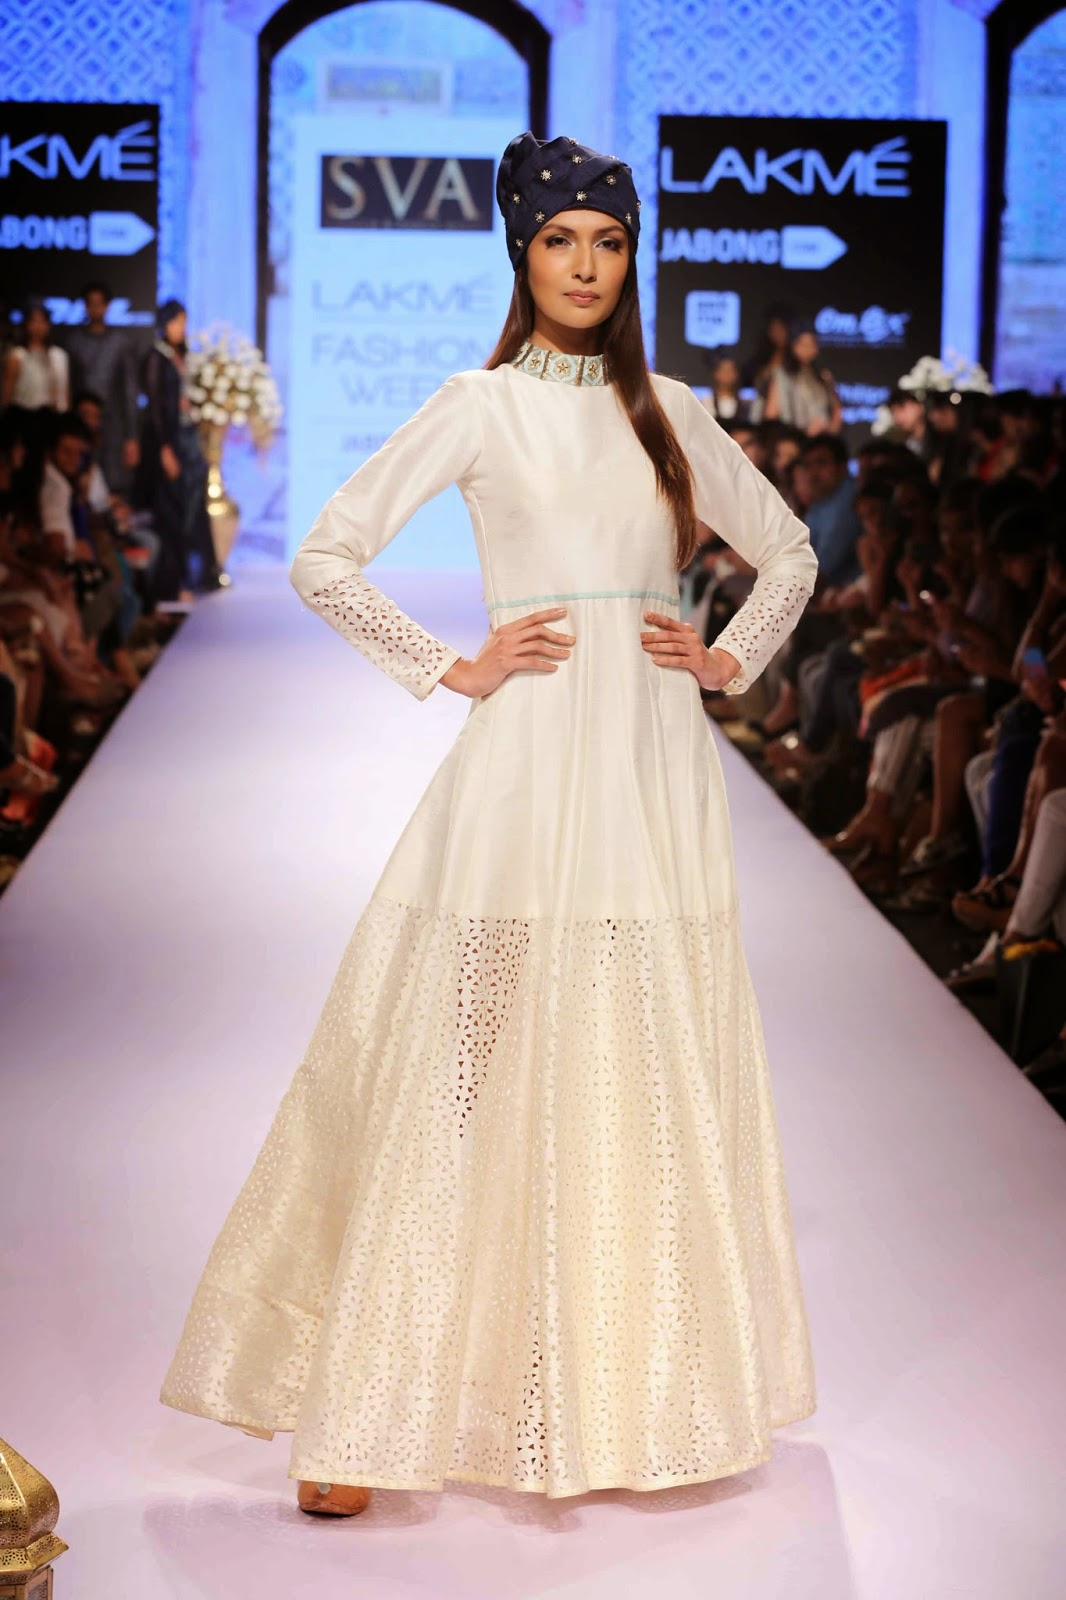 http://aquaintperspective.blogspot.in/,SVA BY SONAM AND PARAS MODI